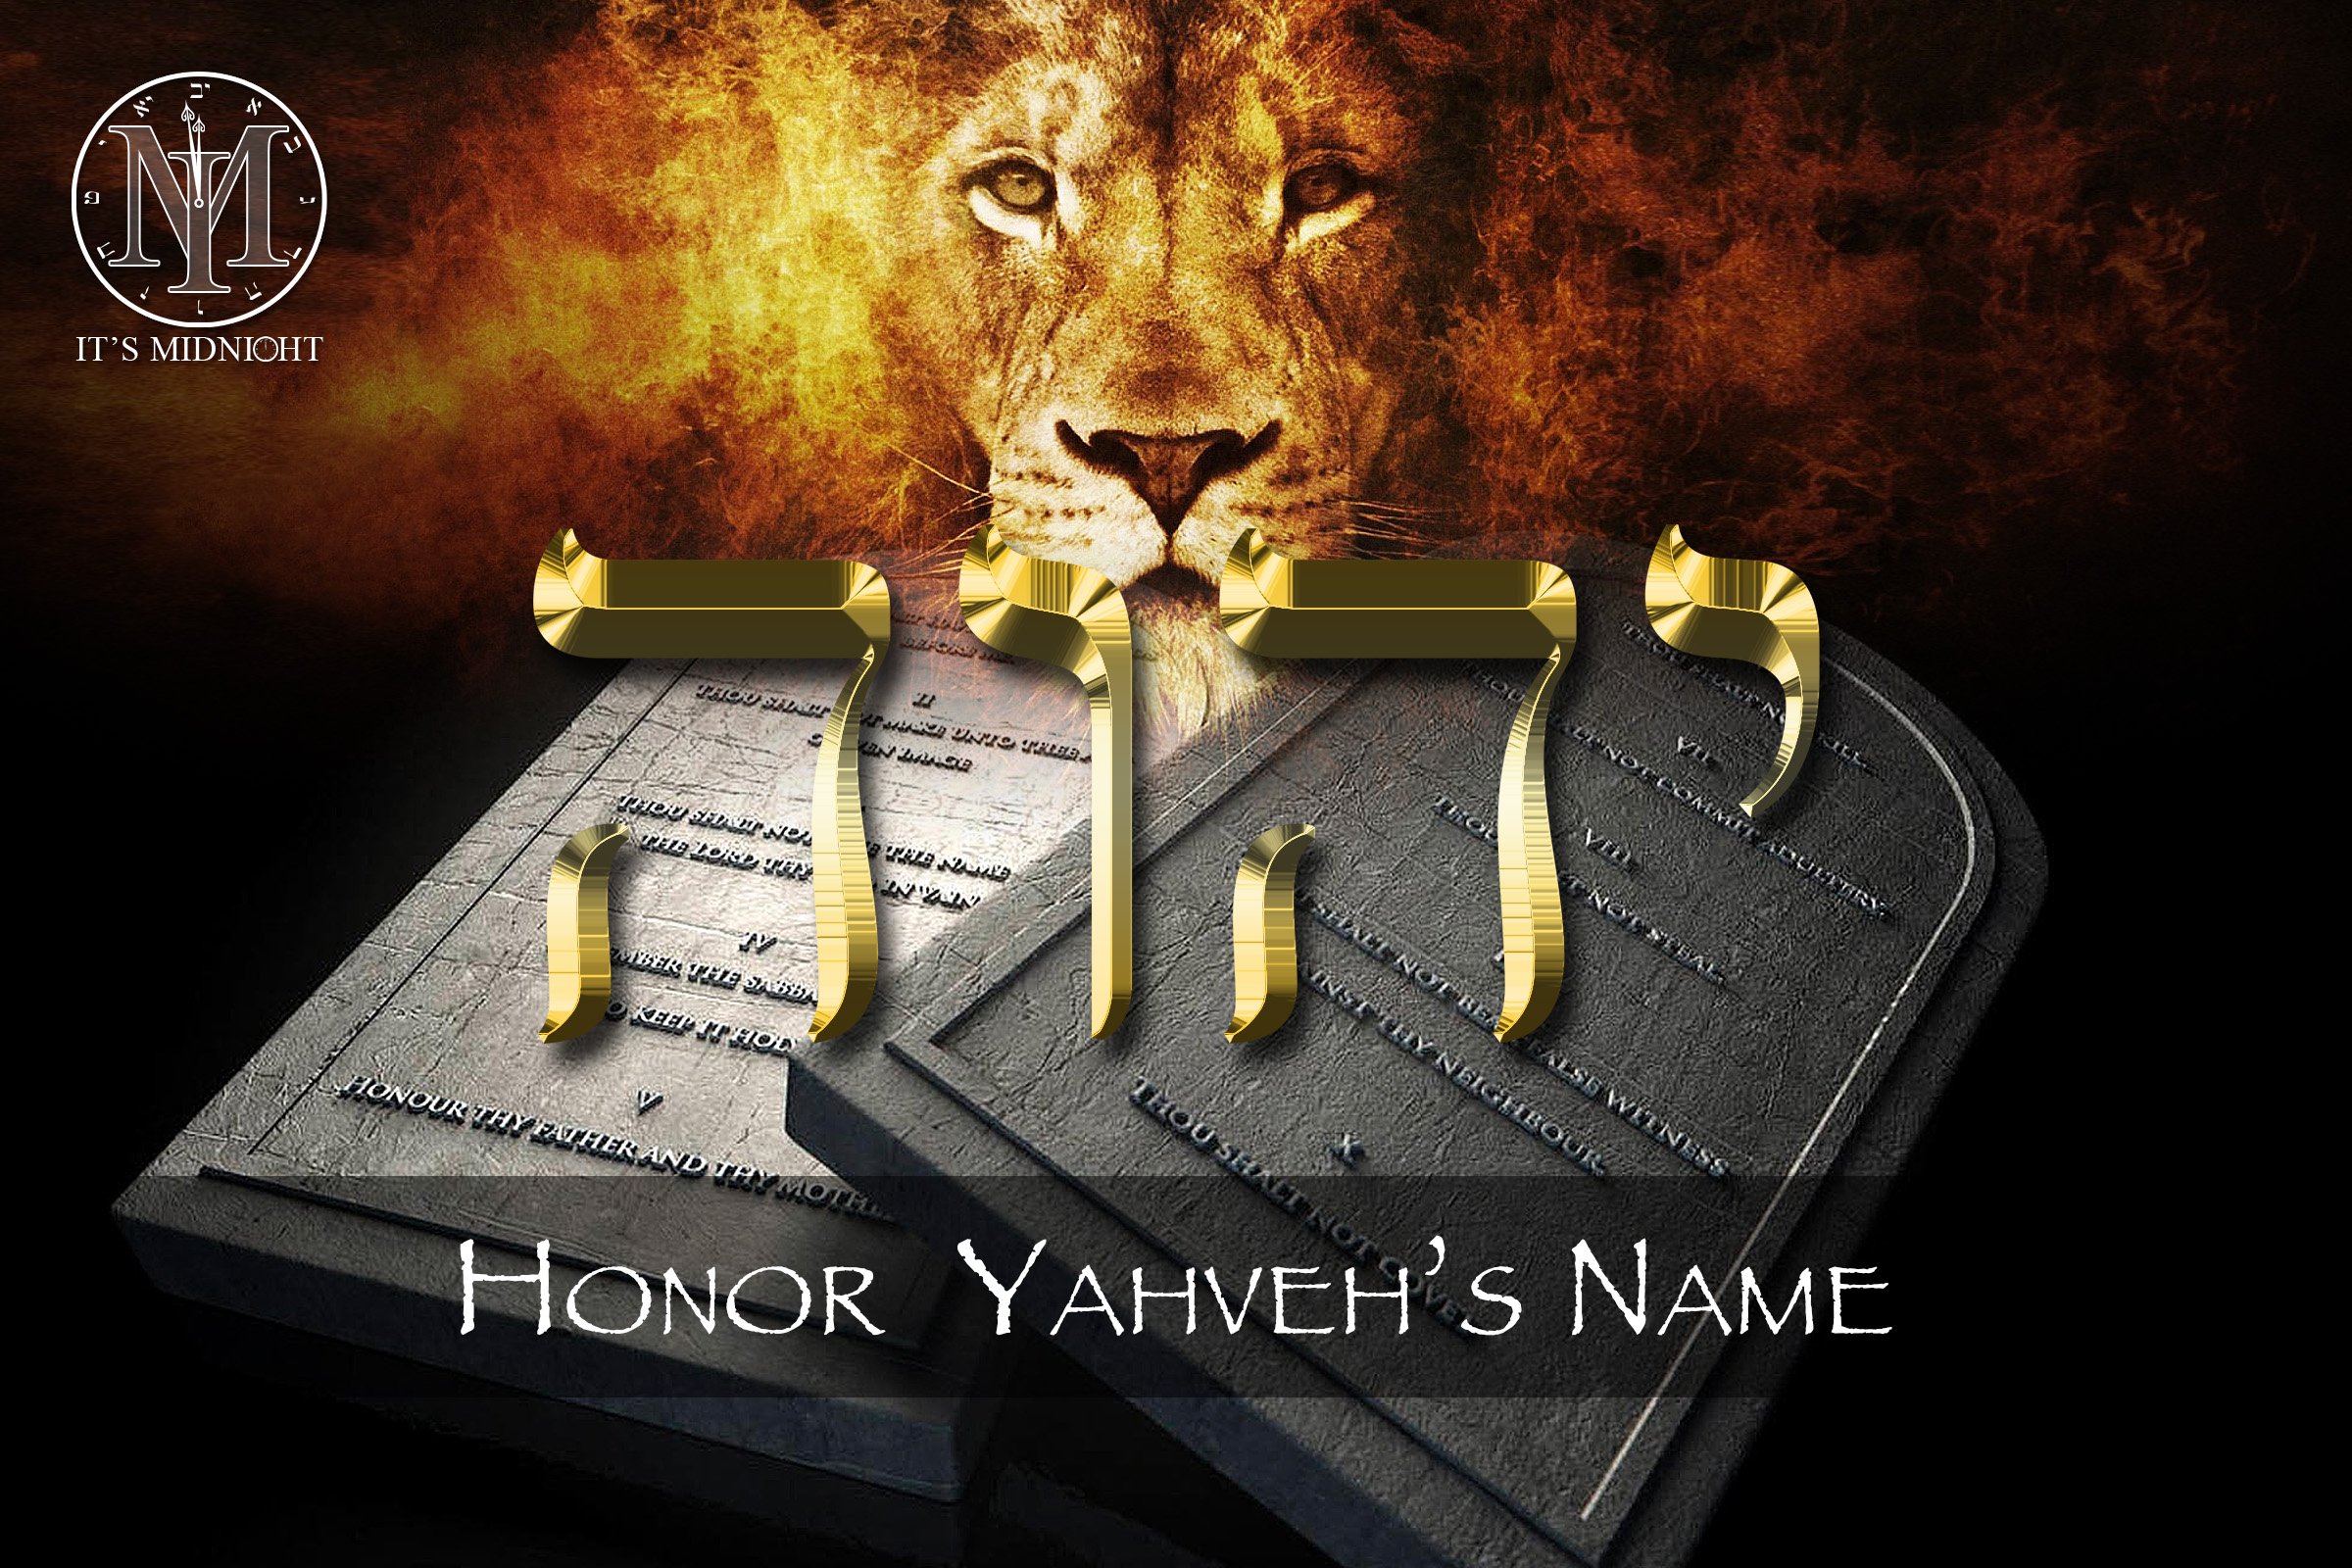 3rd Commandment: Honor Yahveh's Name